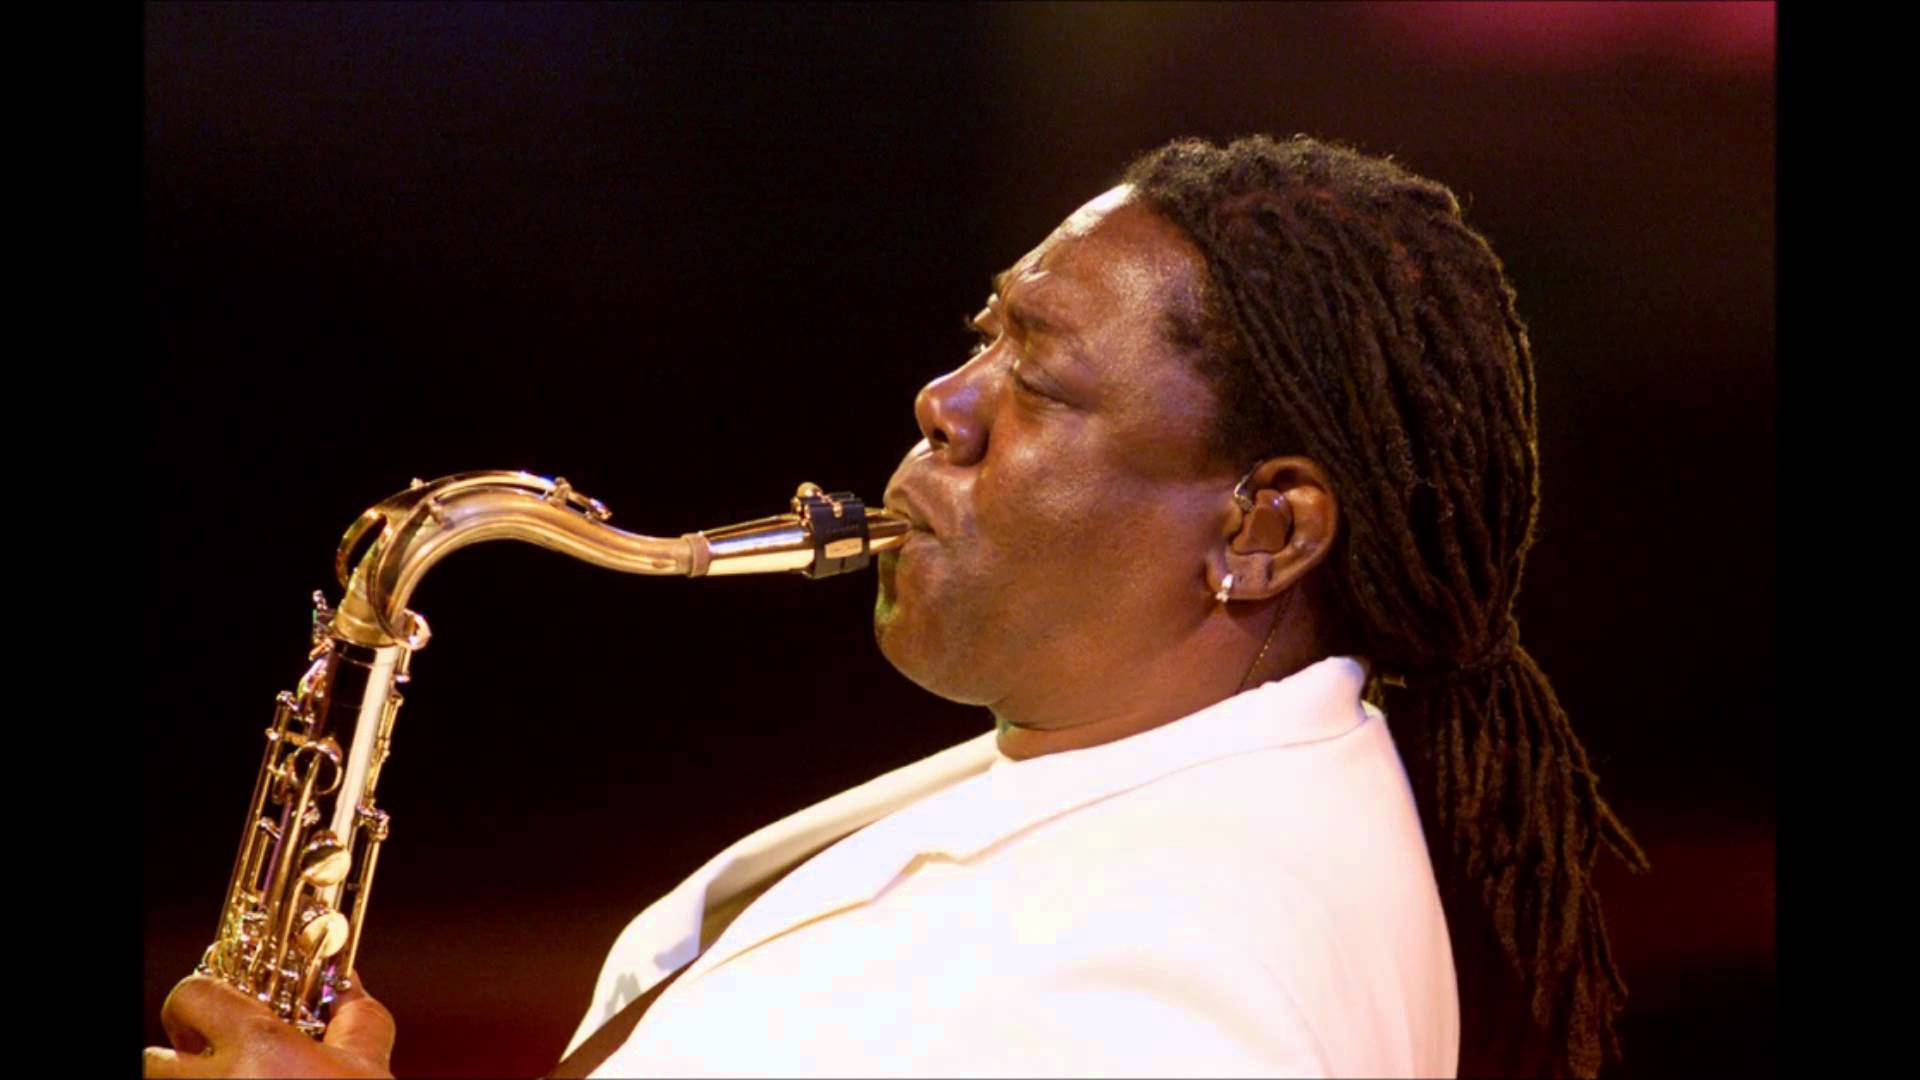 Clarence Clemons- Jungleland Saxophone solo (studio)